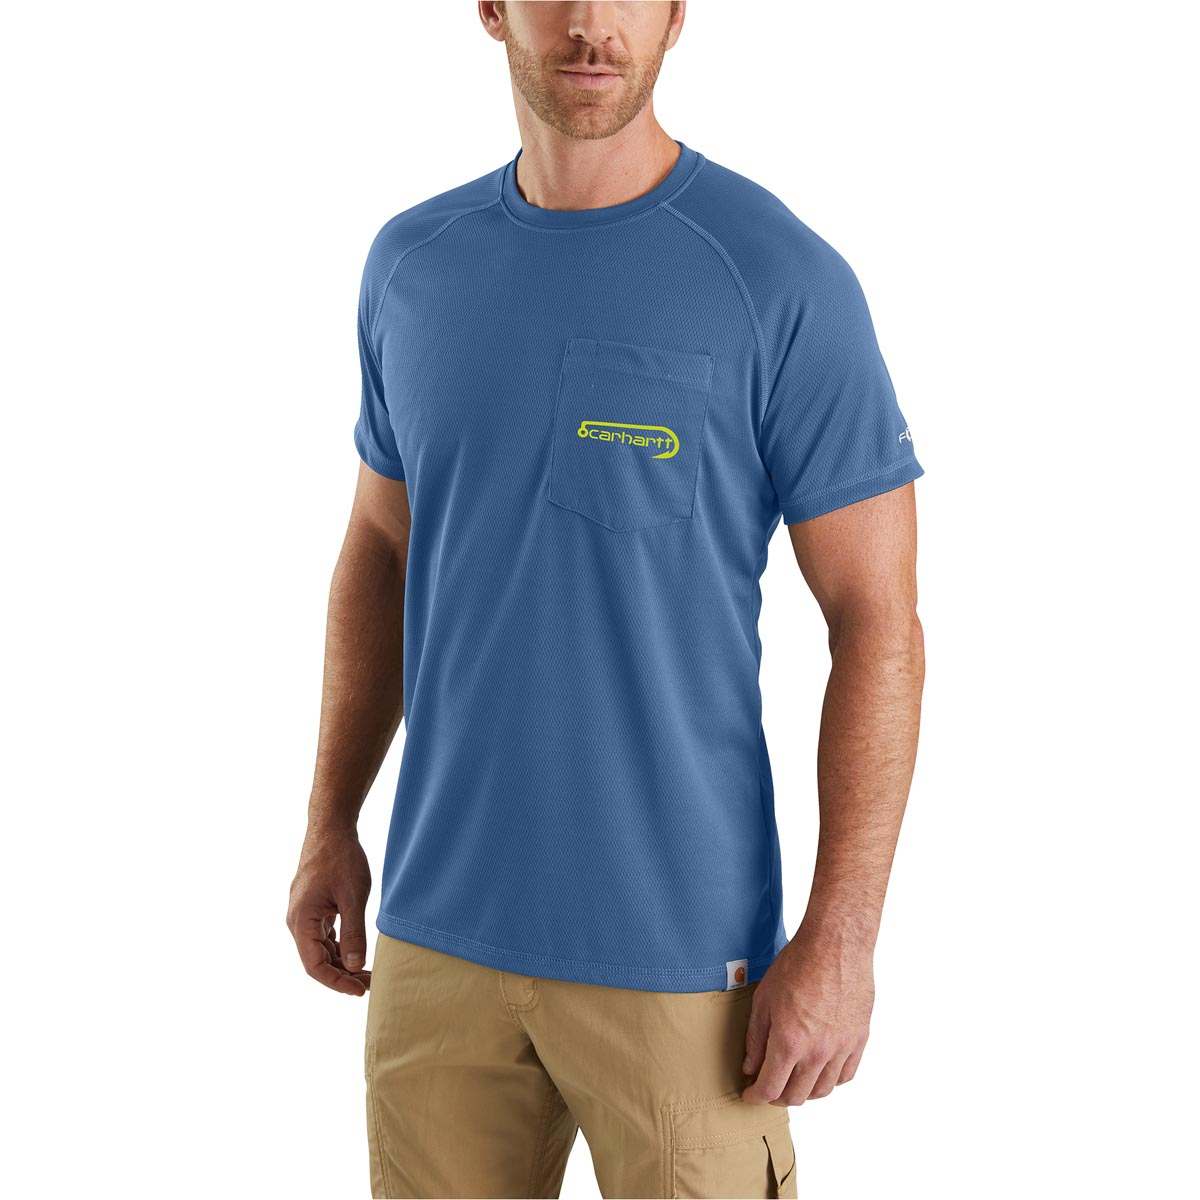 Carhartt Men's Force Fishing Graphic Short Sleeve T-Shirt